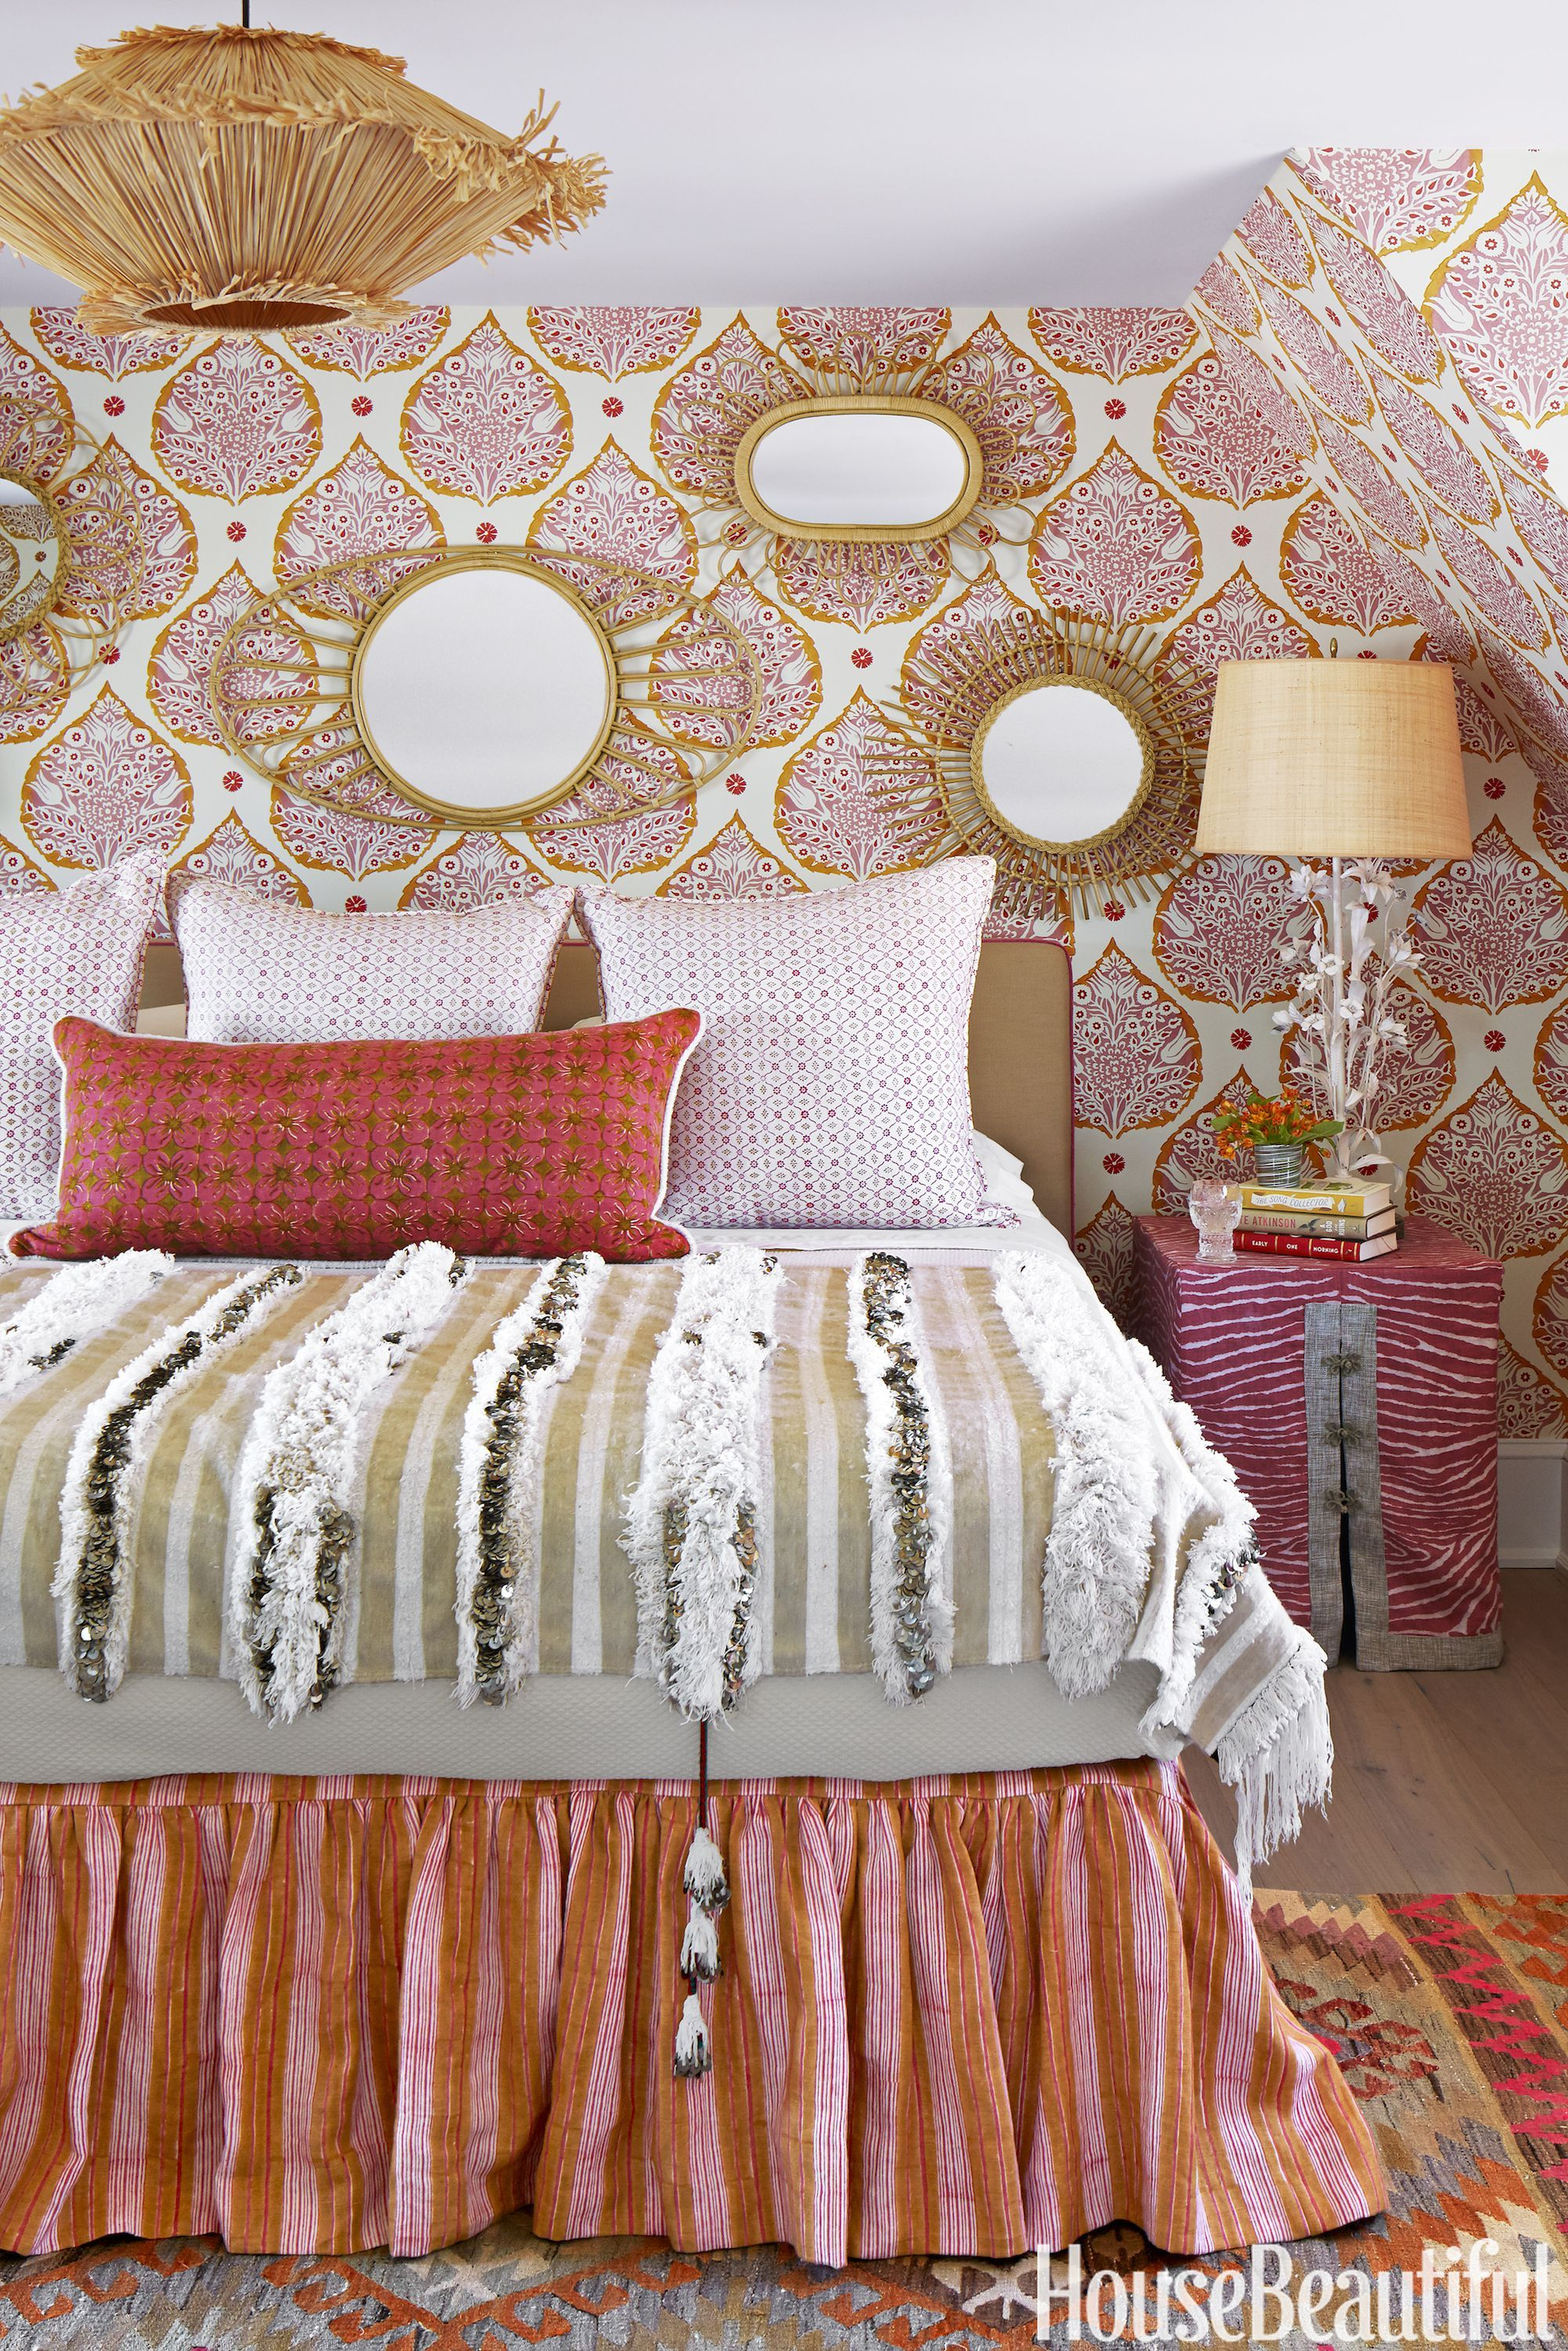 25+ Colorful Bedrooms Thatu0027ll Make You Wake Up Happier